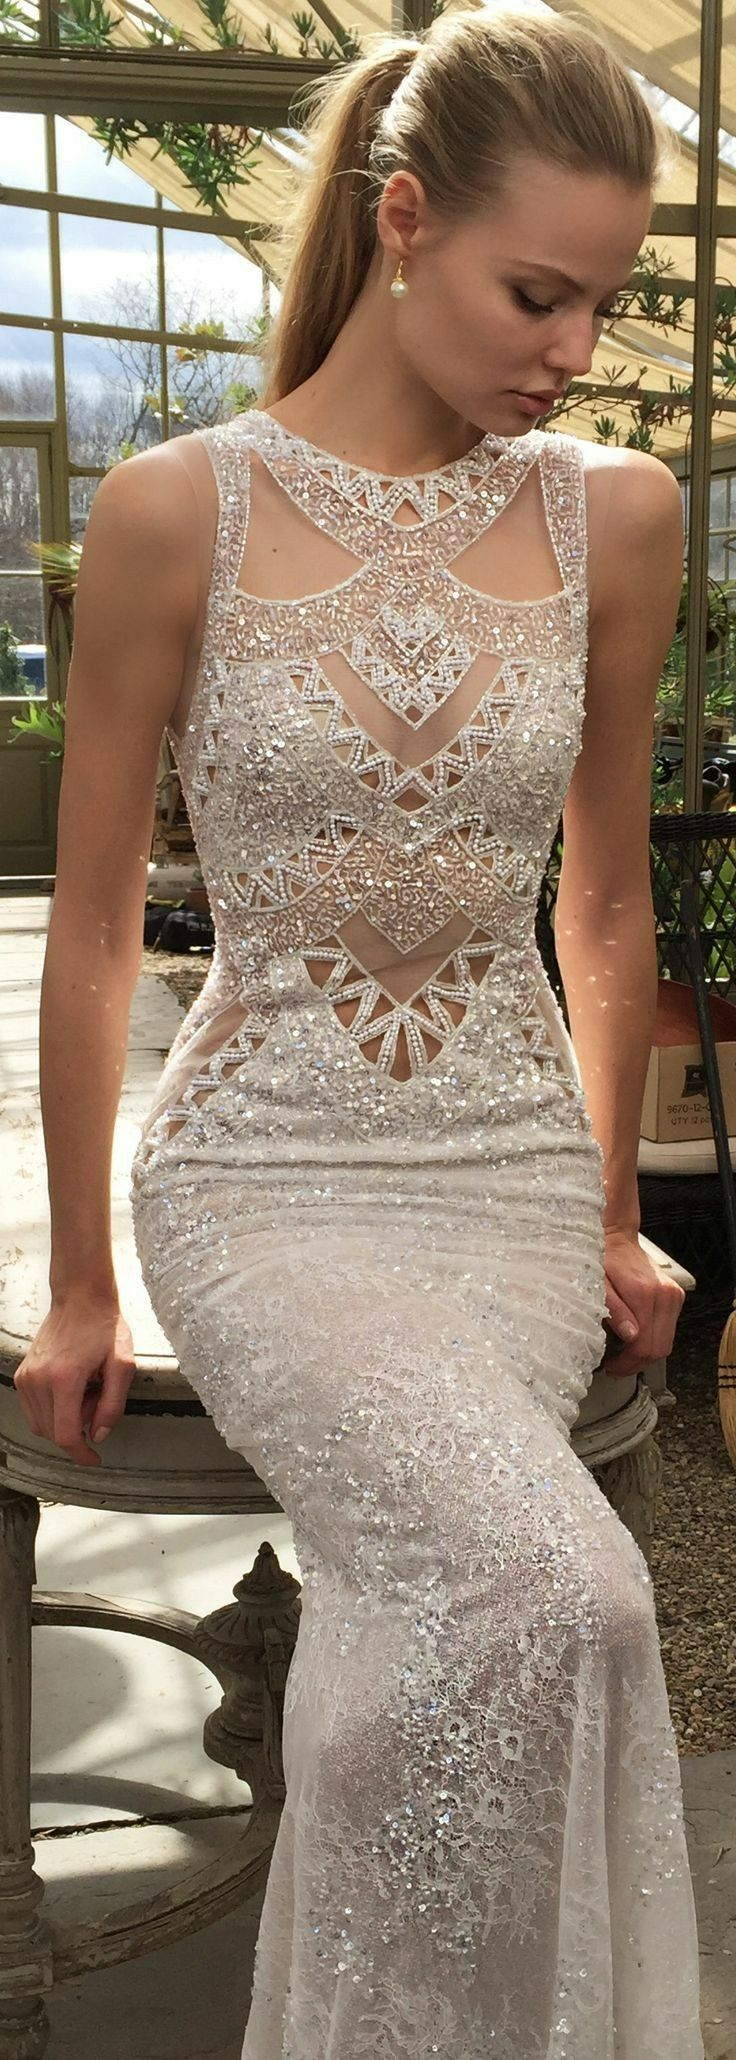 Ross wedding dress  Pin by Lore Ross on Couture Inside and Out  Pinterest  Wedding